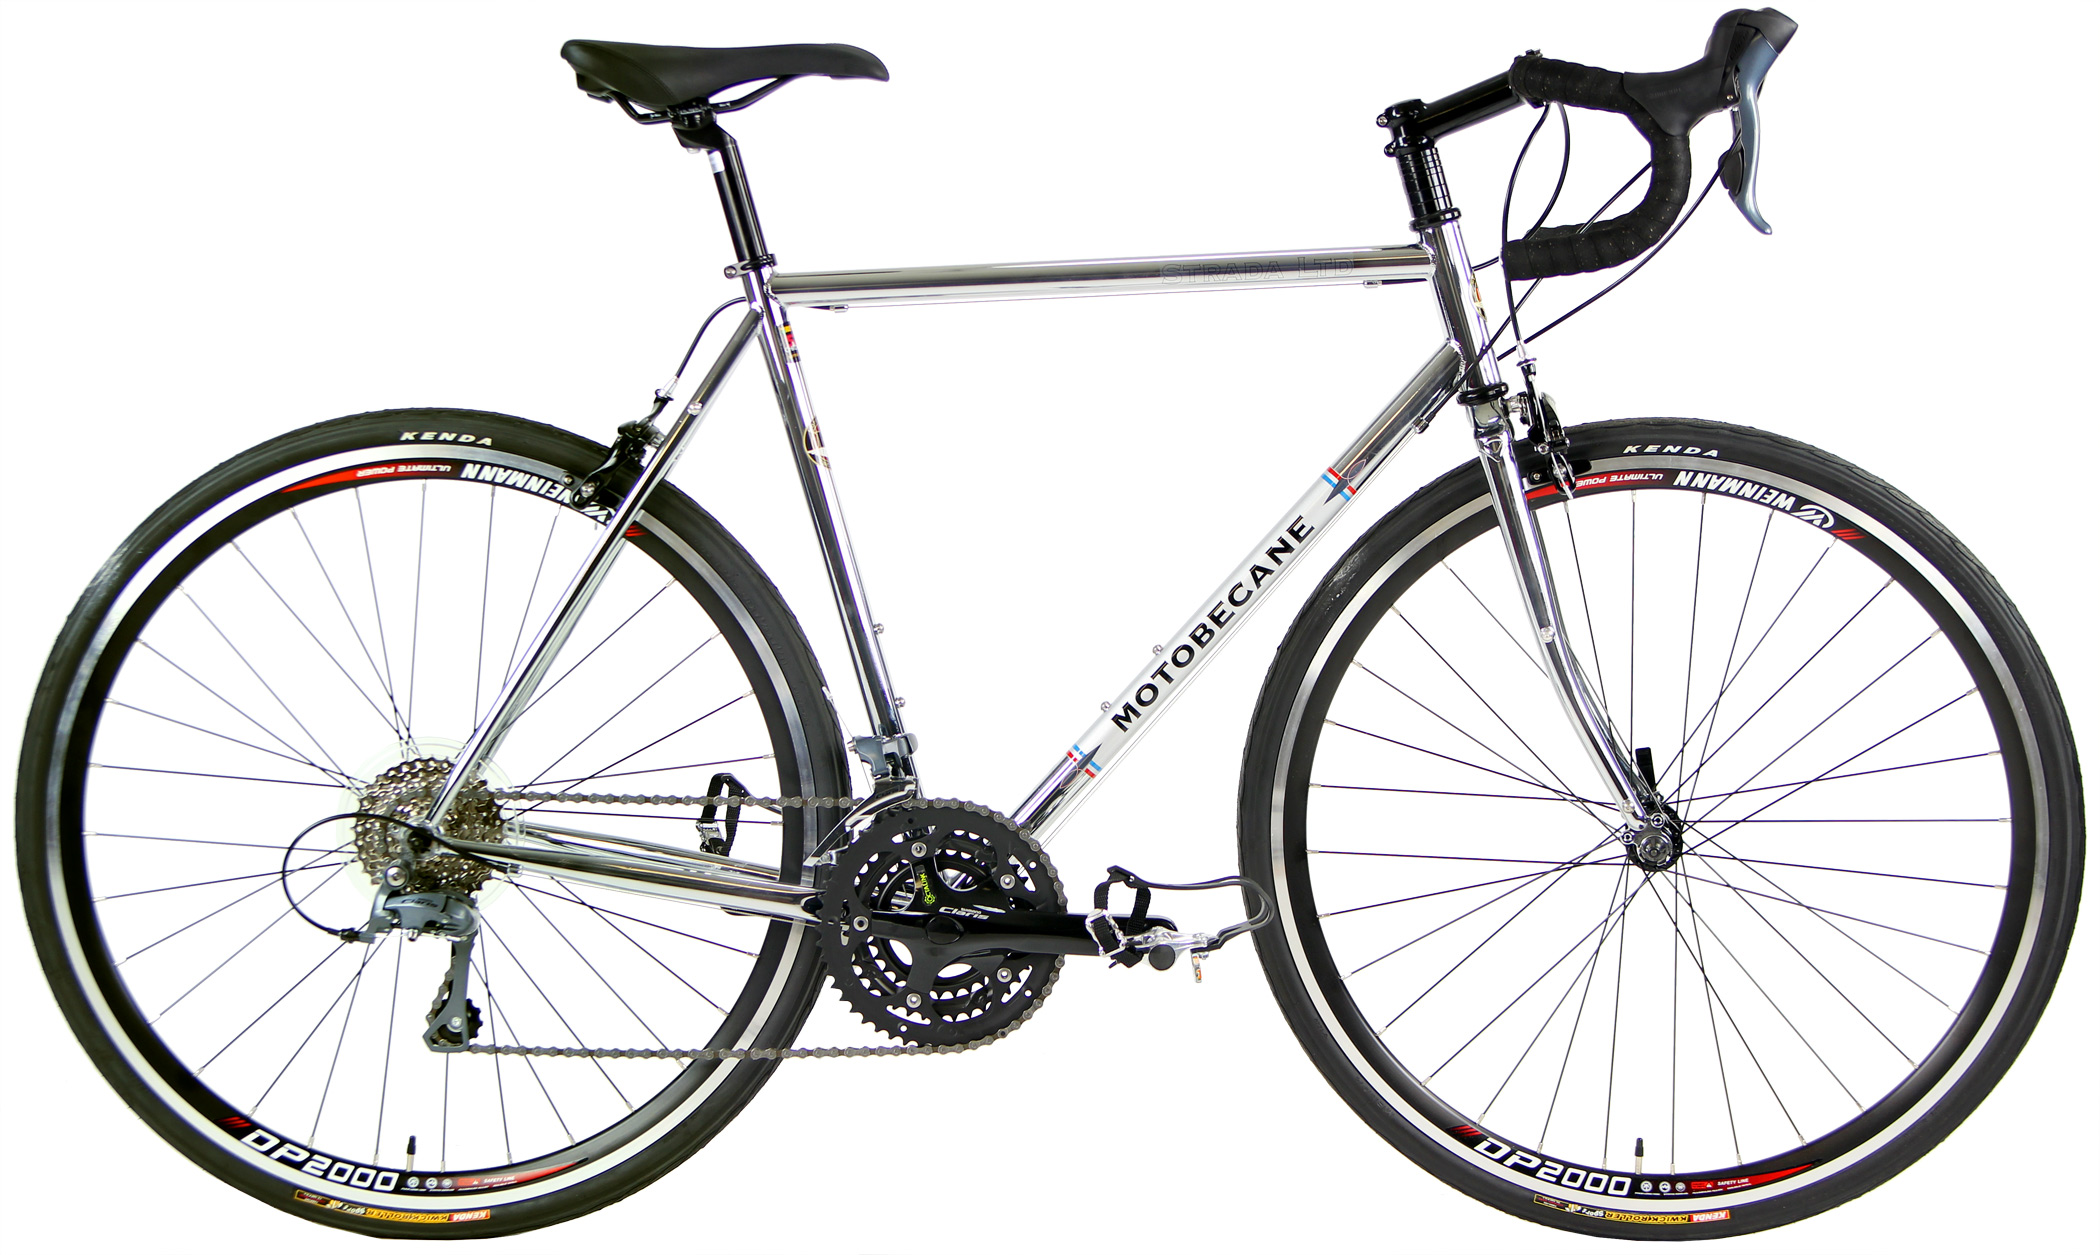 STRADA ltd. 1.0 CHROME     - CHROMOLY ROAD BIKE 24sp